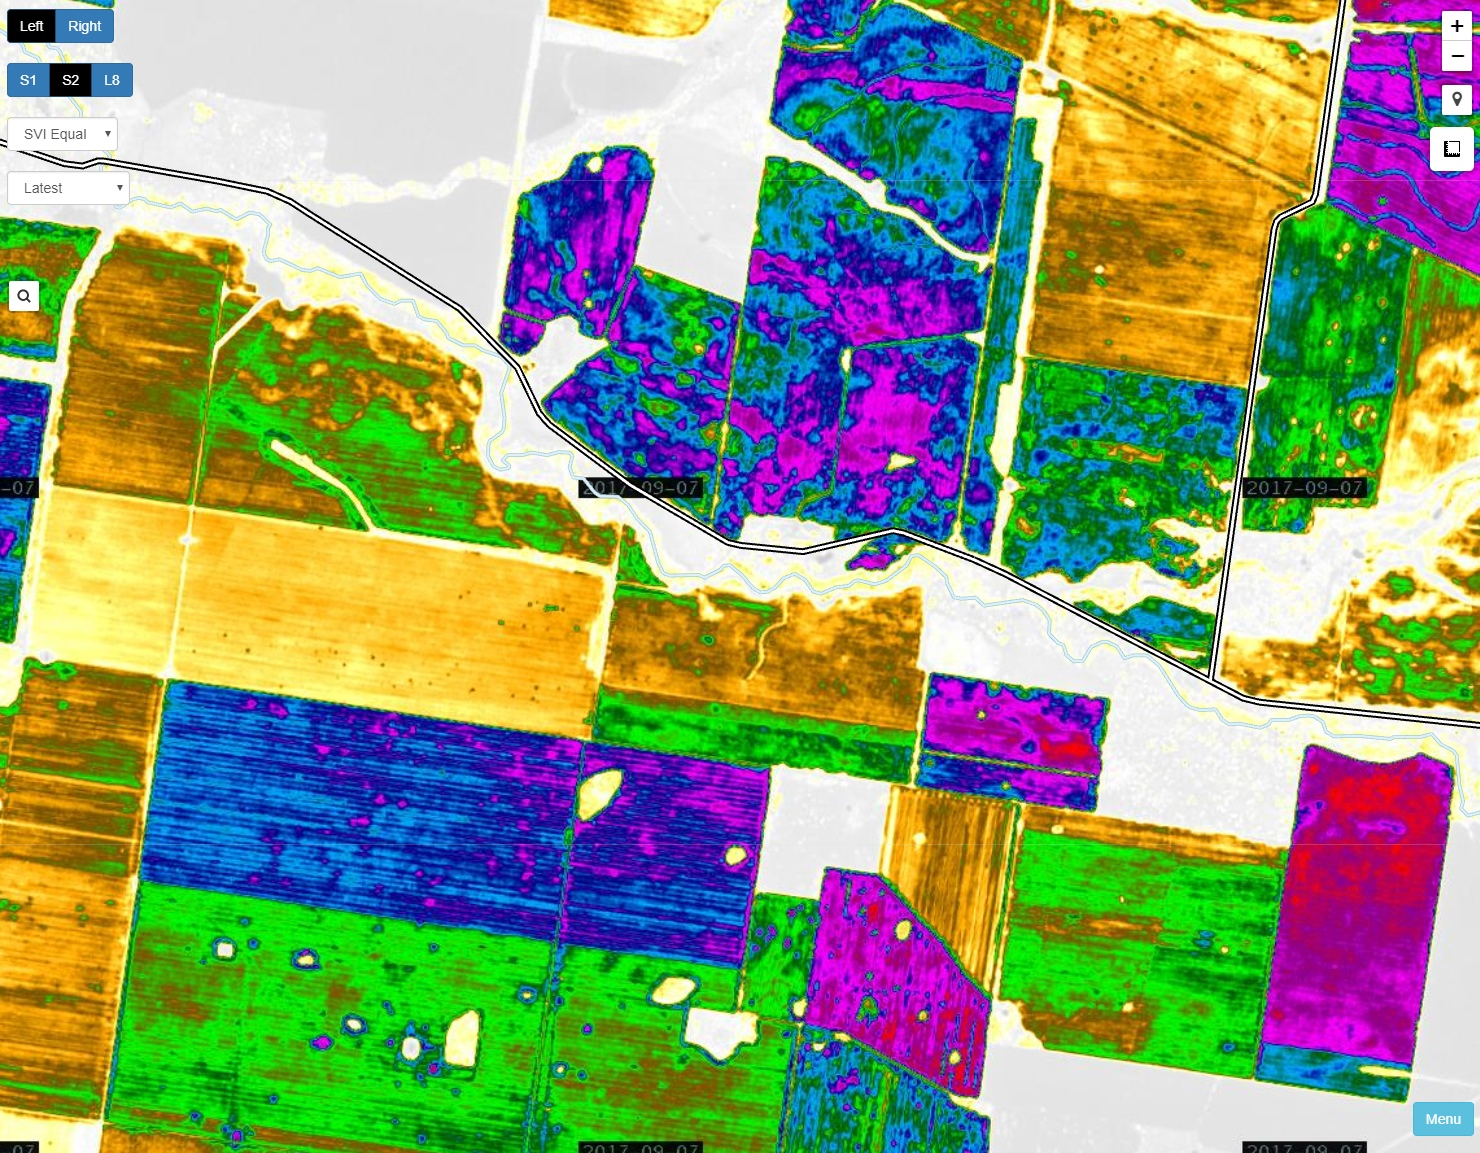 Easily pan around and find the paddocks you are looking for. No paddock boundaries required.